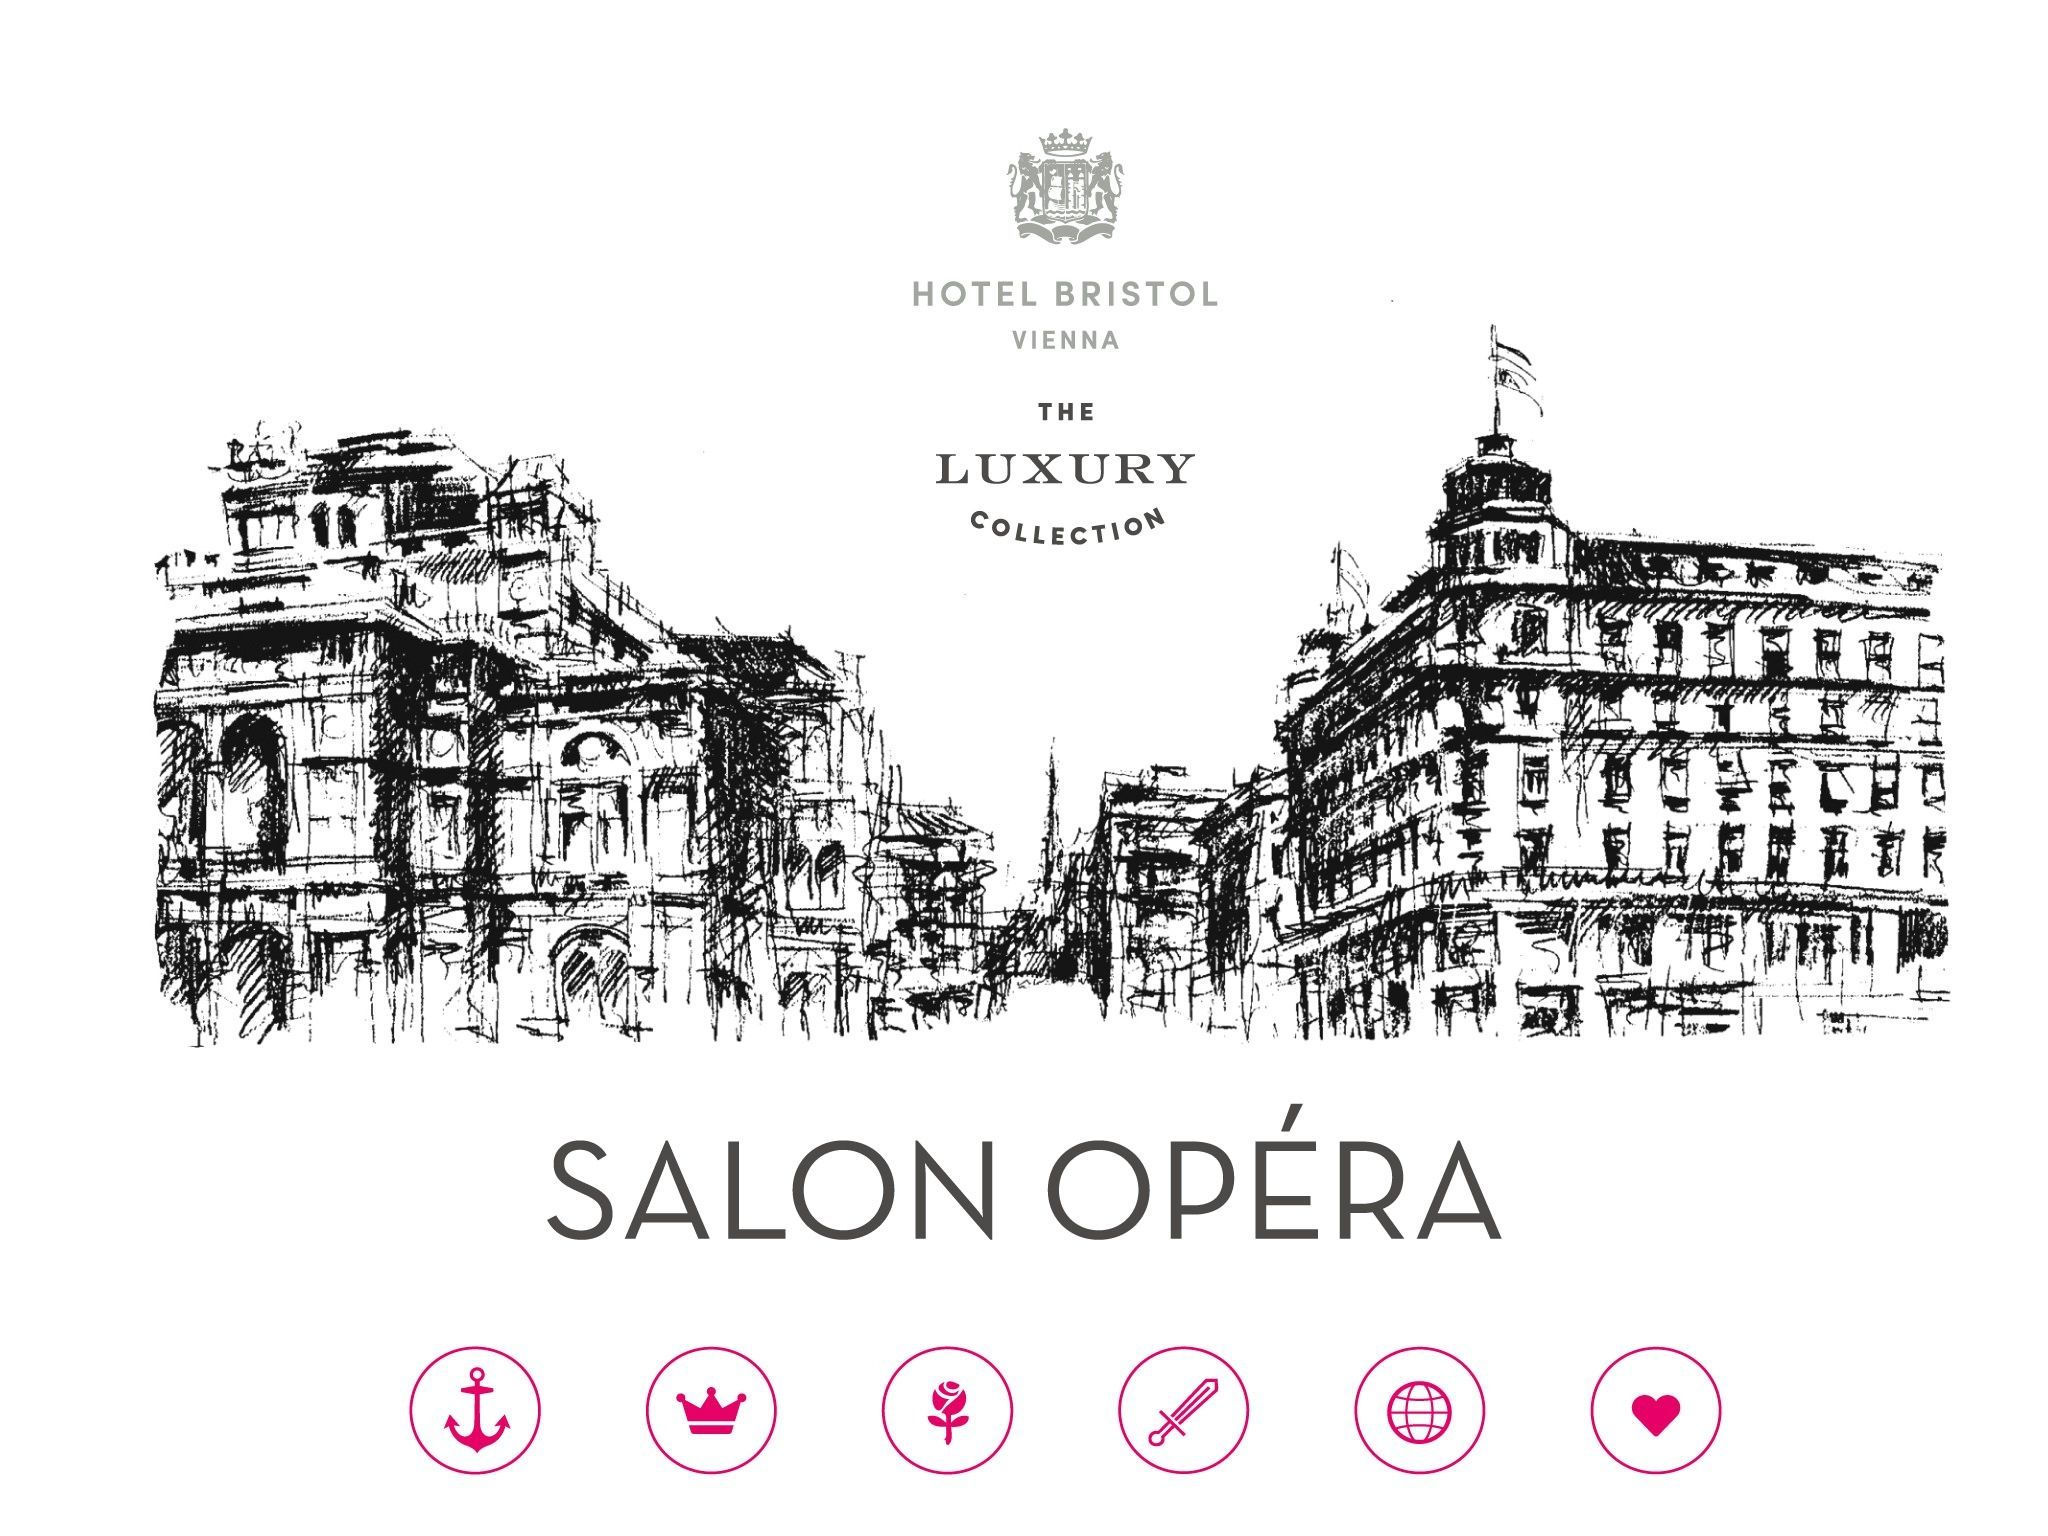 Salon Opera Events in Wien Hotel Bristol